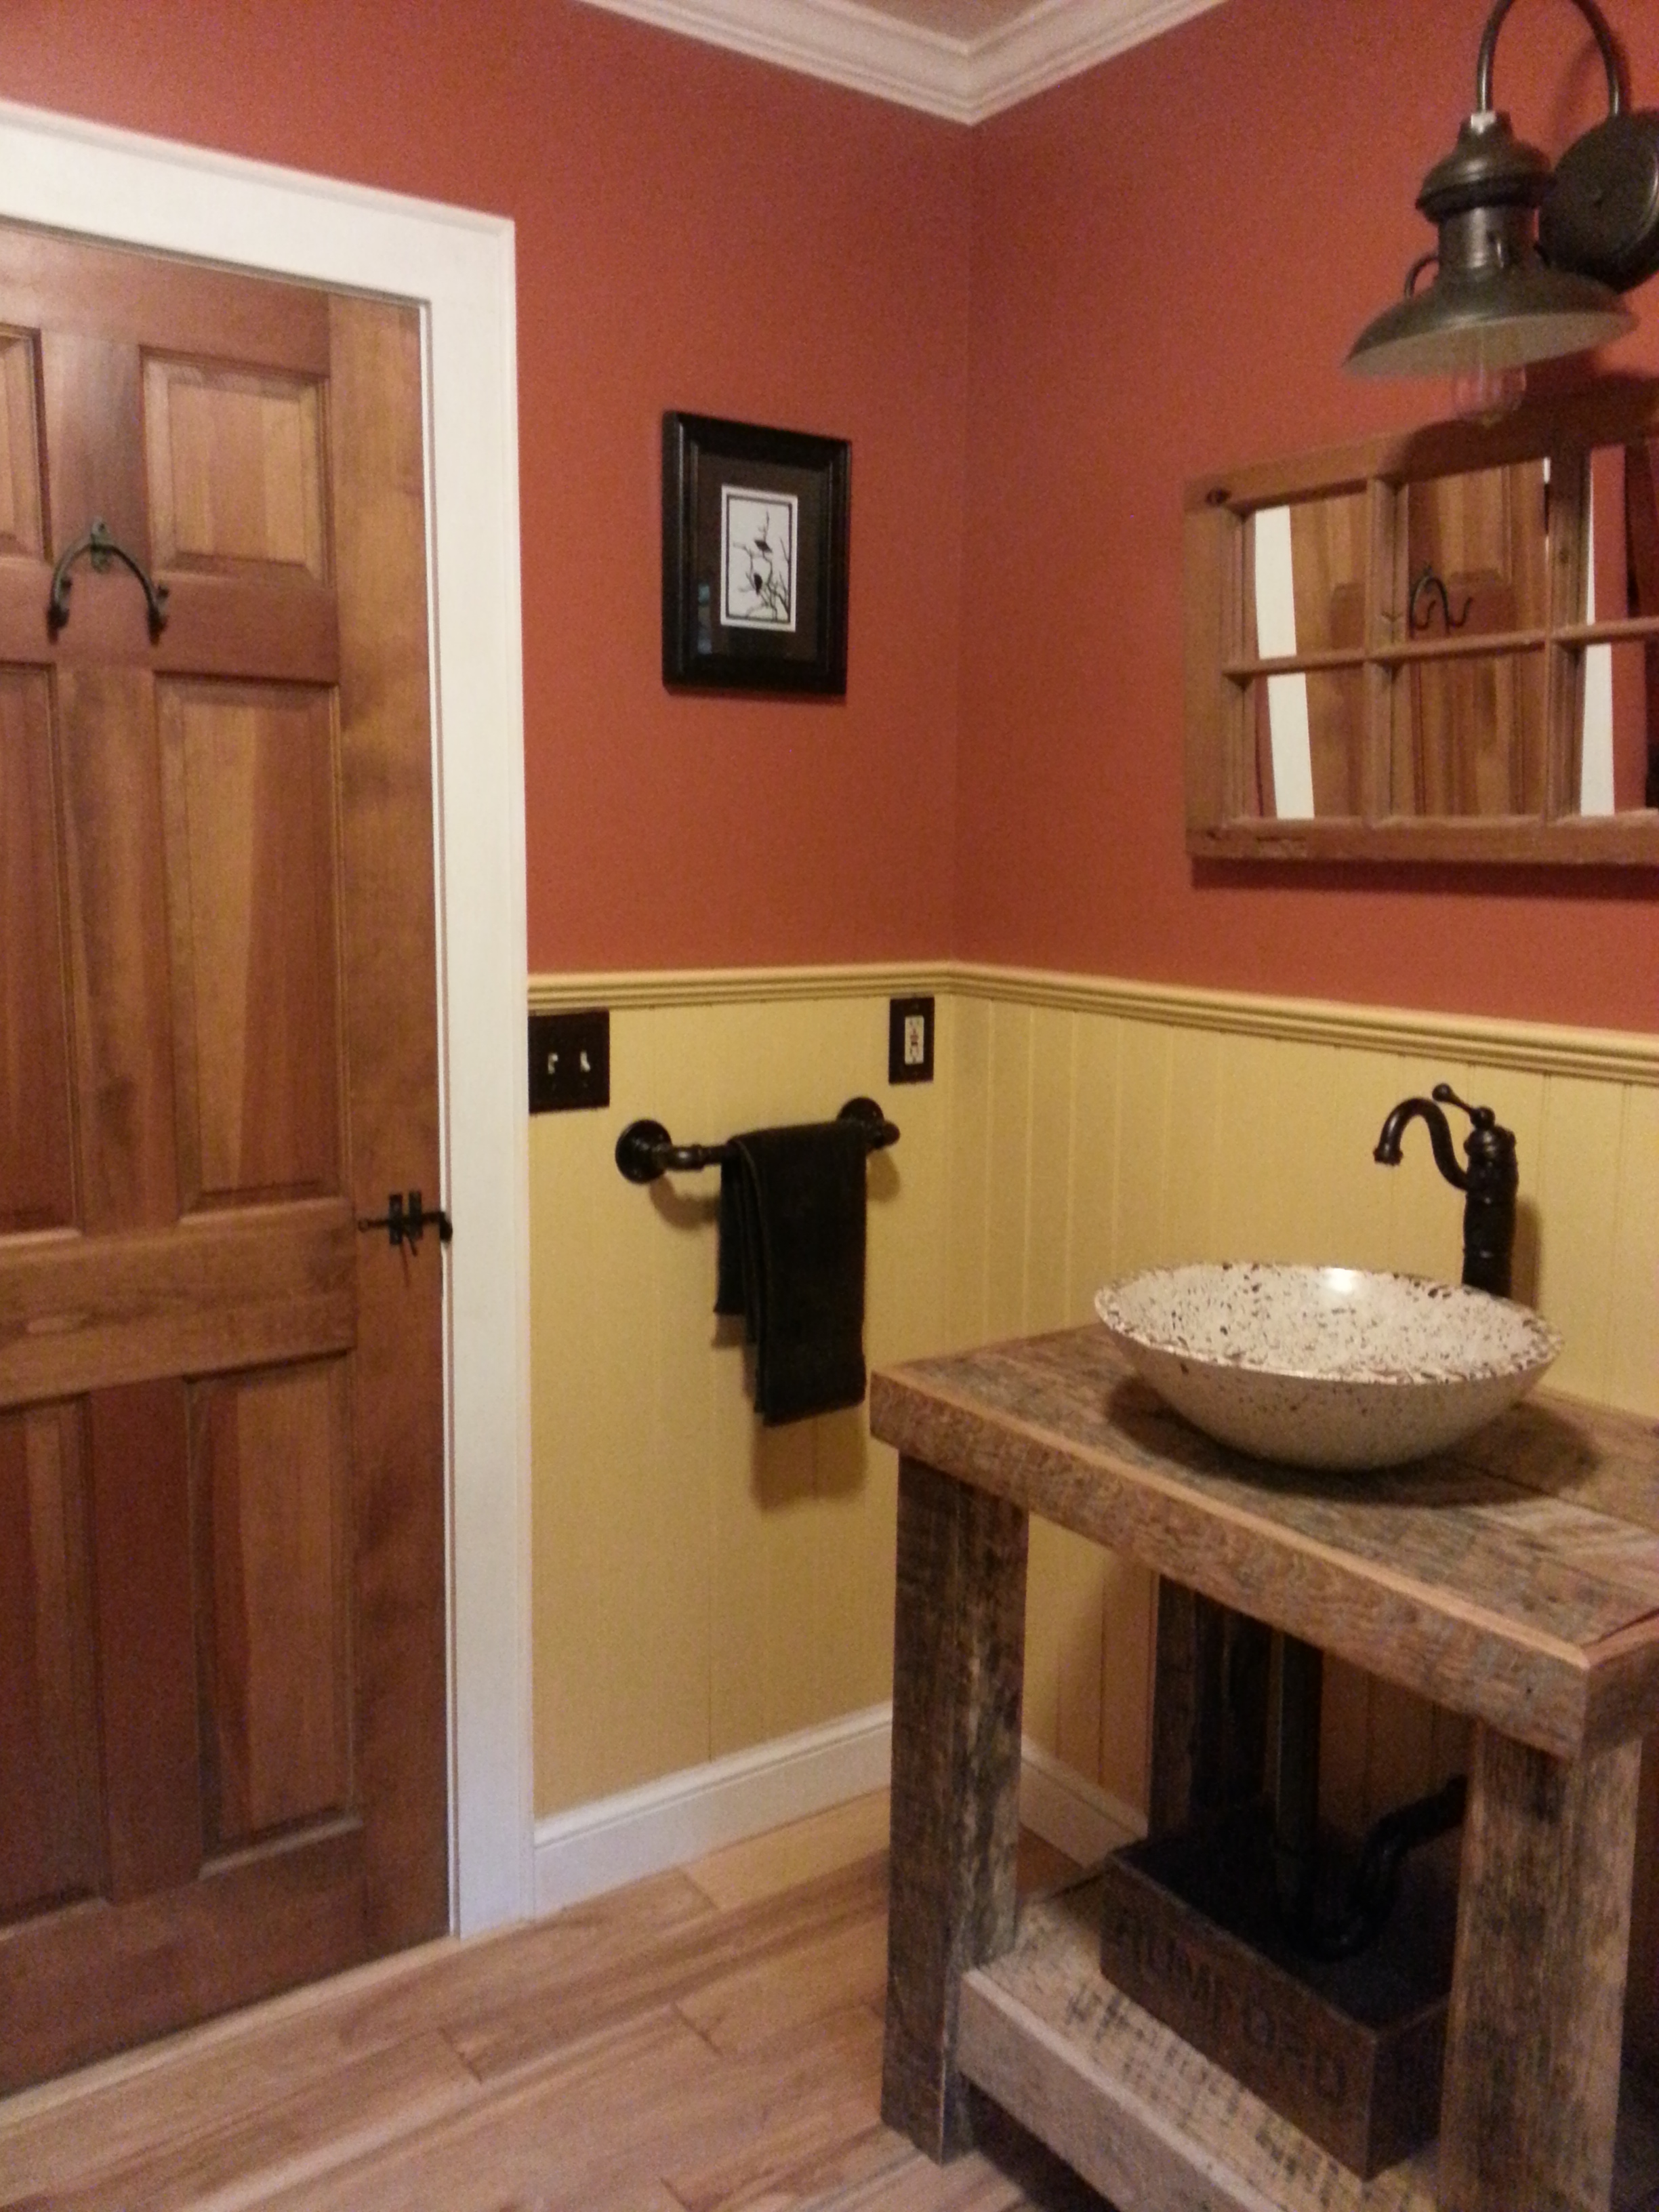 Barn Wall Sconce Adds a Touch of Country to Bathroom Remodel | Blog ...